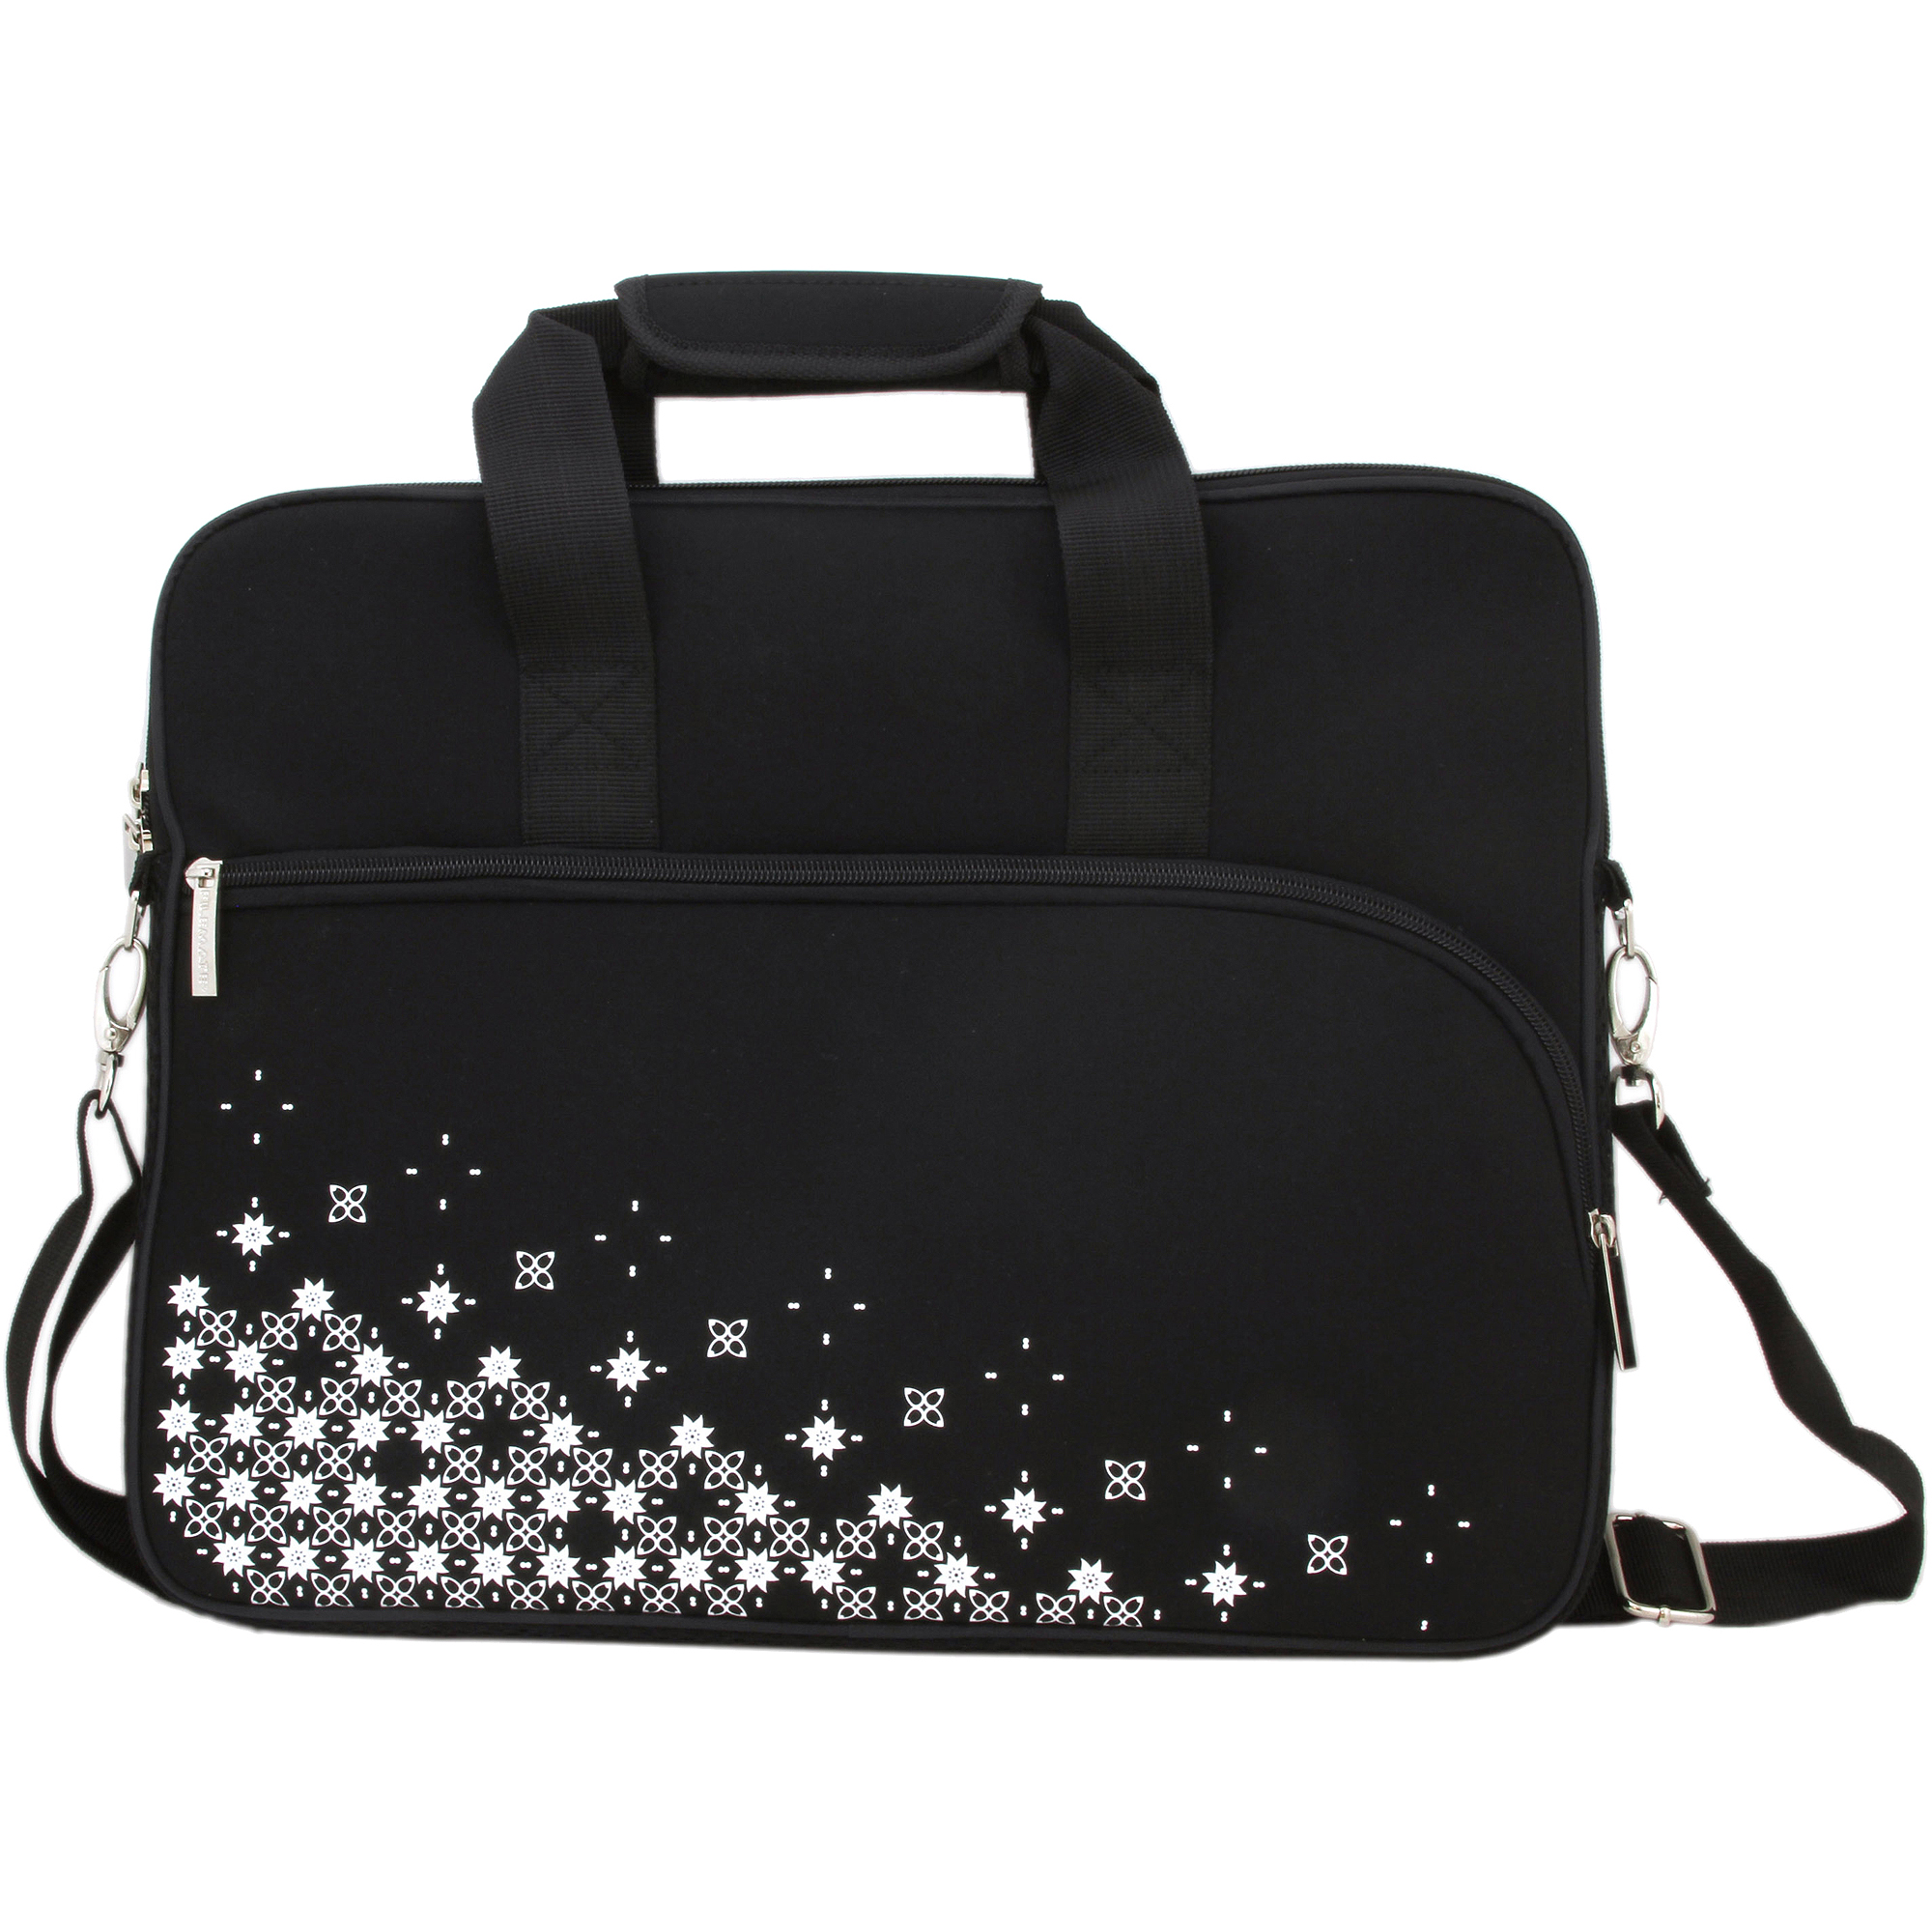 FileMate Imagine Series 15.6-in G810 Notebook Carrying Case with Pattern